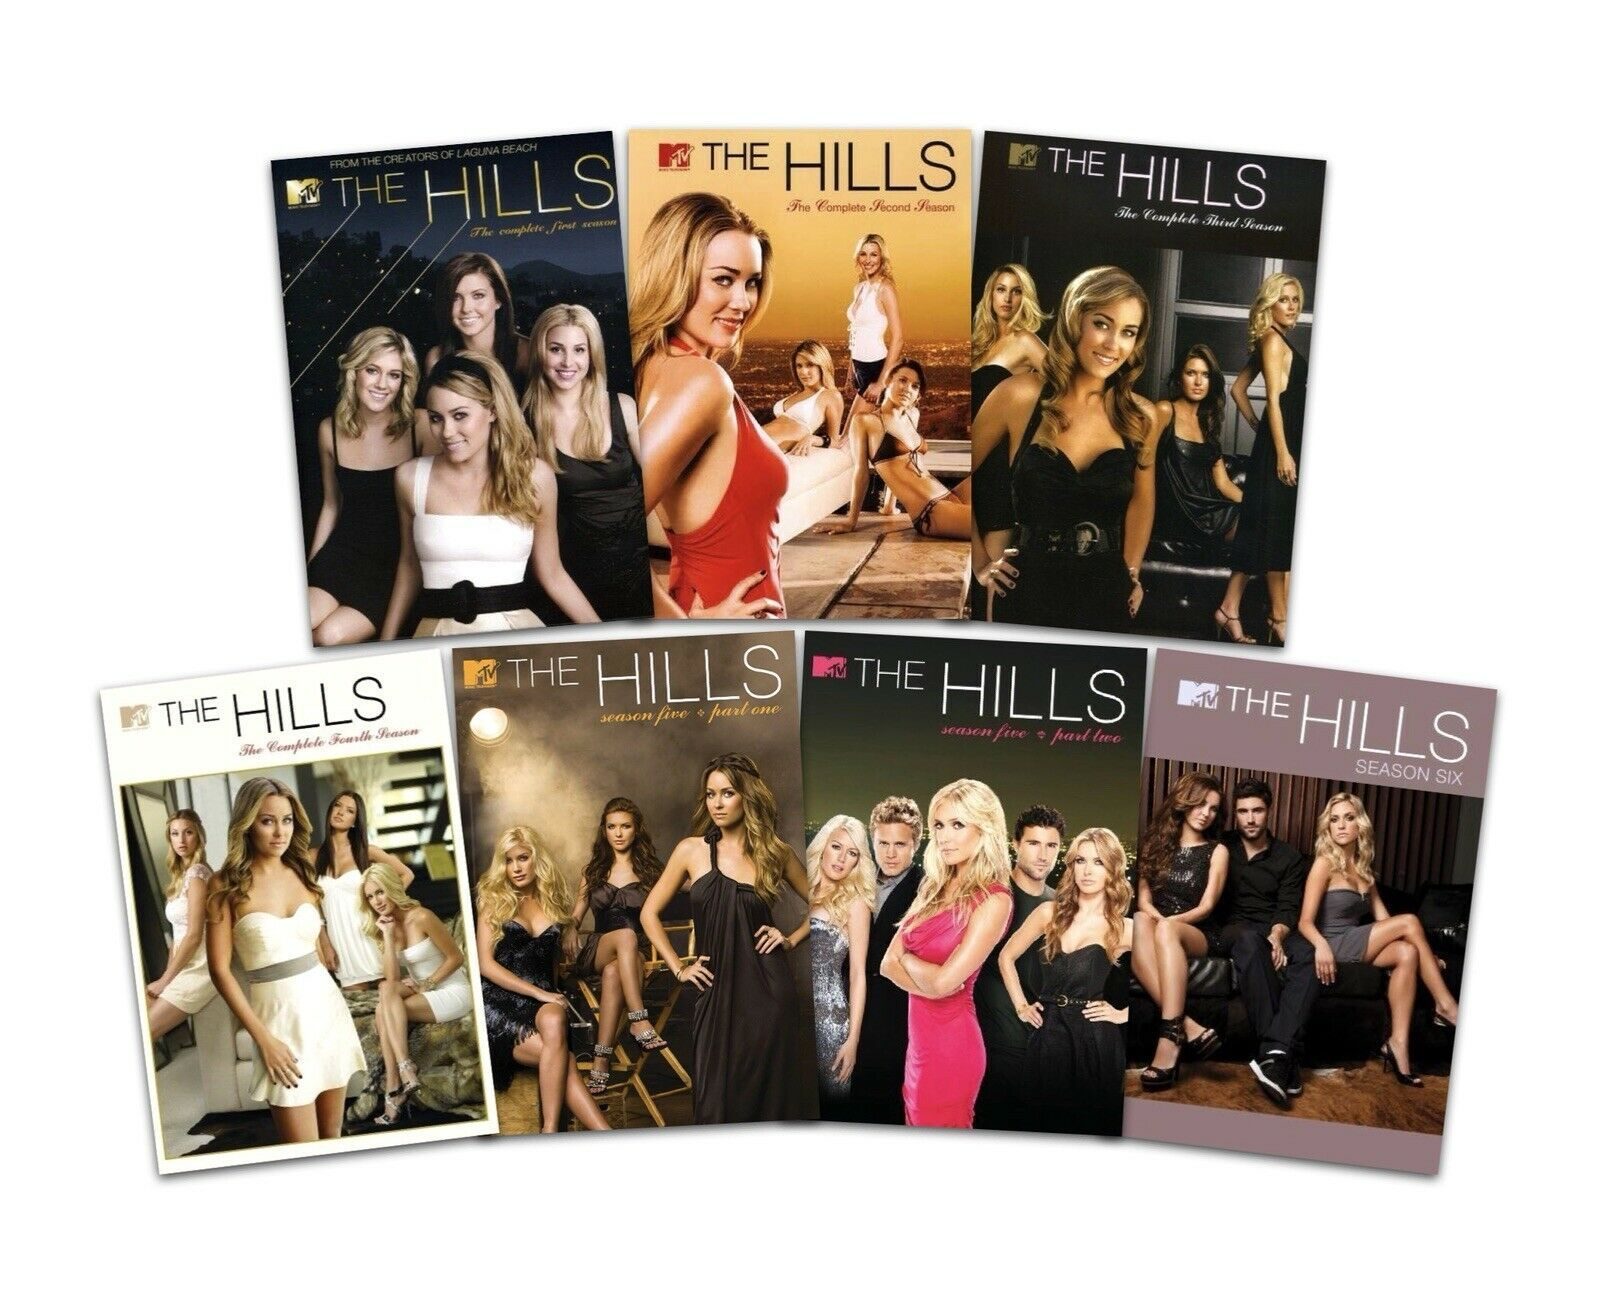 The Hills: Complete Series Seasons 1-6 (DVD Sets New)